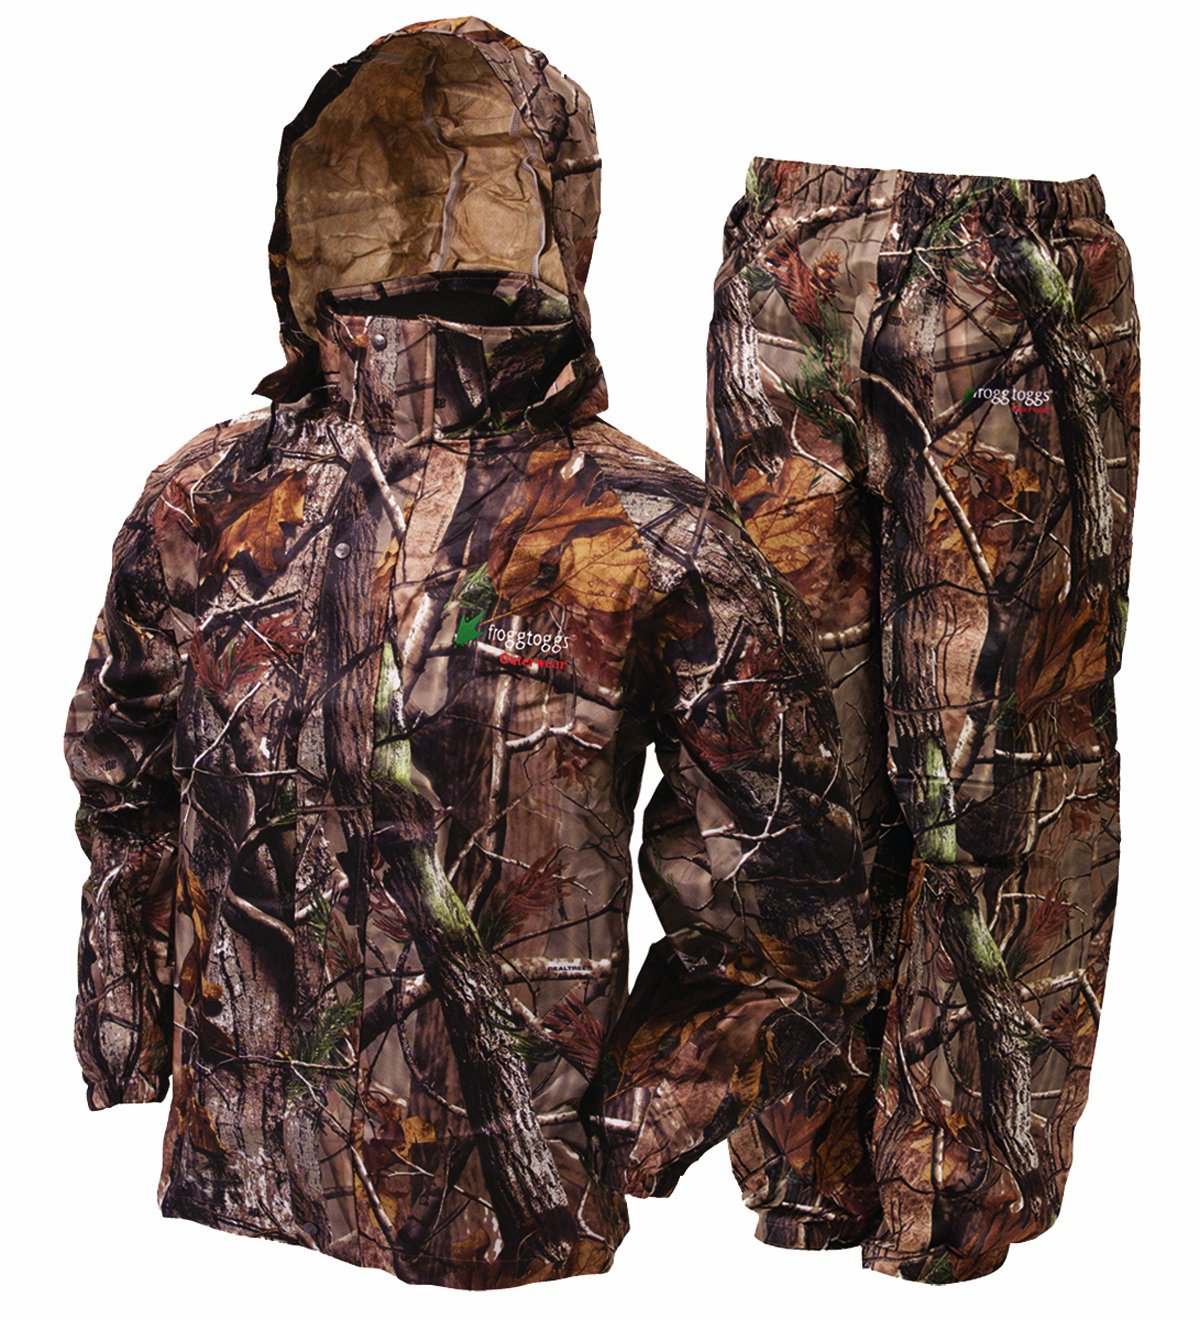 Frogg Toggs All Sport Rain Suit, RealTree All Purpose Xtra Color, Small